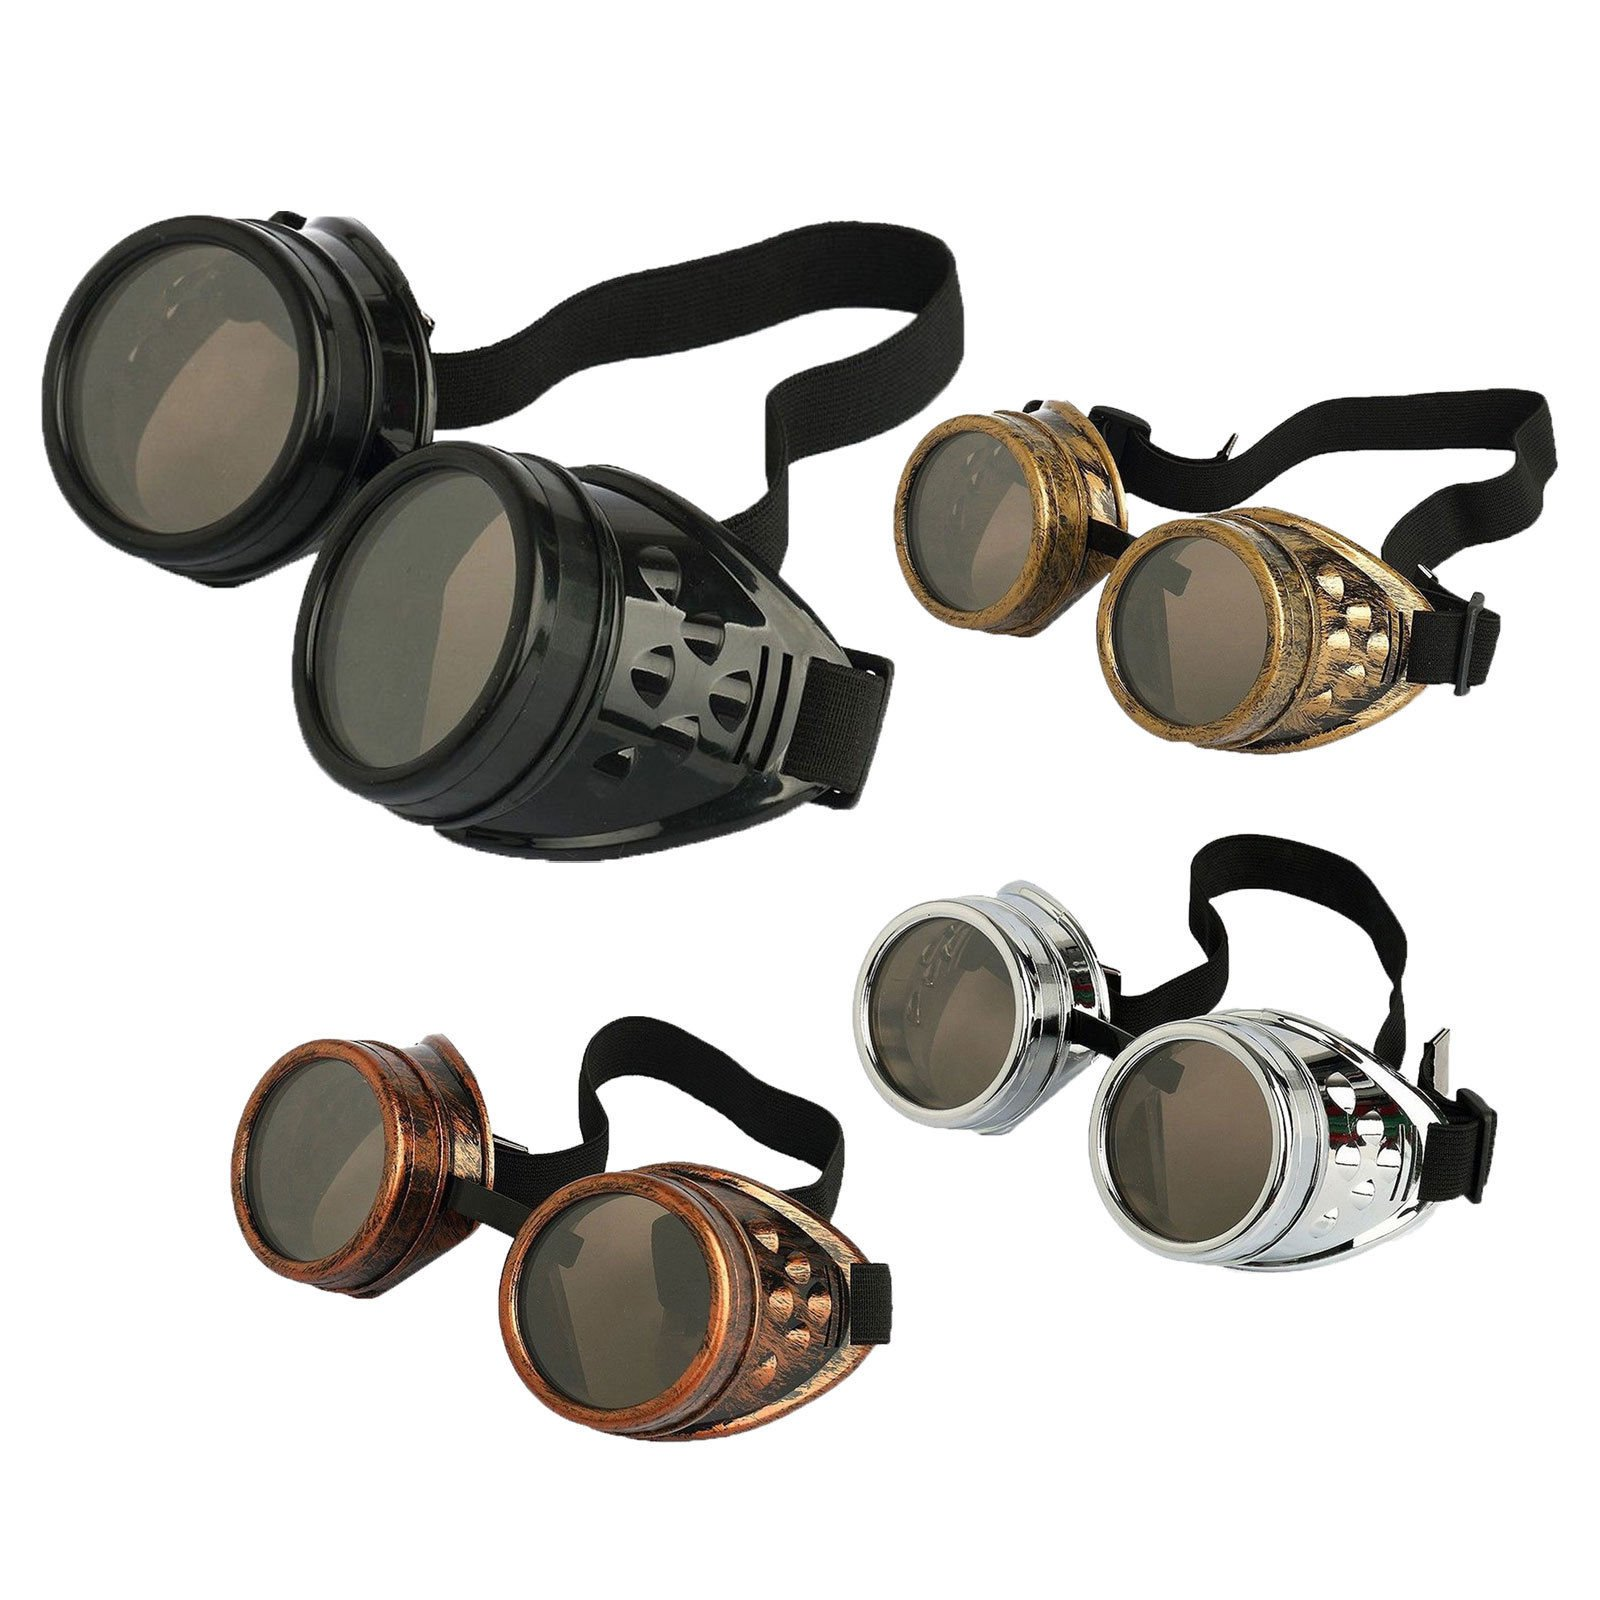 eoocvt 4pcs Retro Vintage Victorian Steampunk Goggles Glasses Welding Cyber Punk Gothic Cosplay Sunglasse by eoocvt